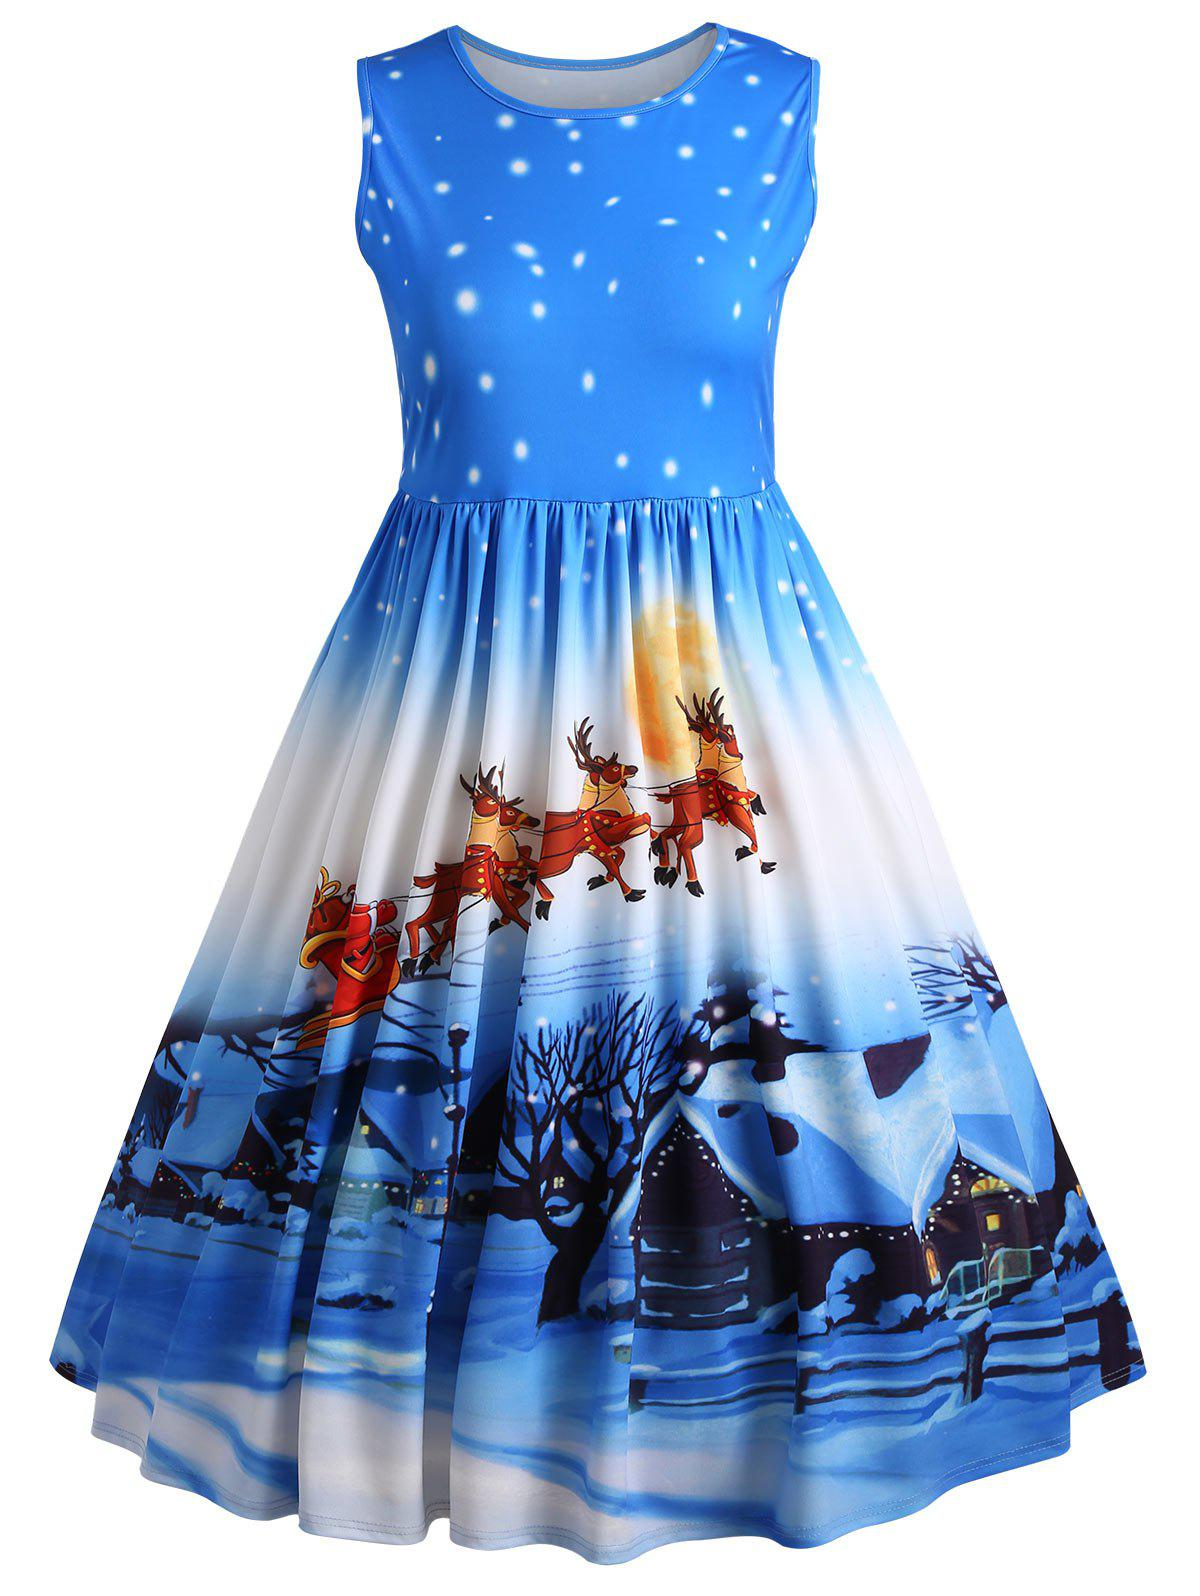 Plus Size Deer Midi Sleeveless Vintage Christmas DressWOMEN<br><br>Size: 3XL; Color: BLUE; Style: Cute; Material: Polyester; Silhouette: Ball Gown; Dresses Length: Mid-Calf; Neckline: Round Collar; Sleeve Length: Sleeveless; Waist: High Waisted; Pattern Type: Animal,Character,Print; With Belt: No; Season: Fall,Winter; Weight: 0.6000kg; Package Contents: 1 x Dress;